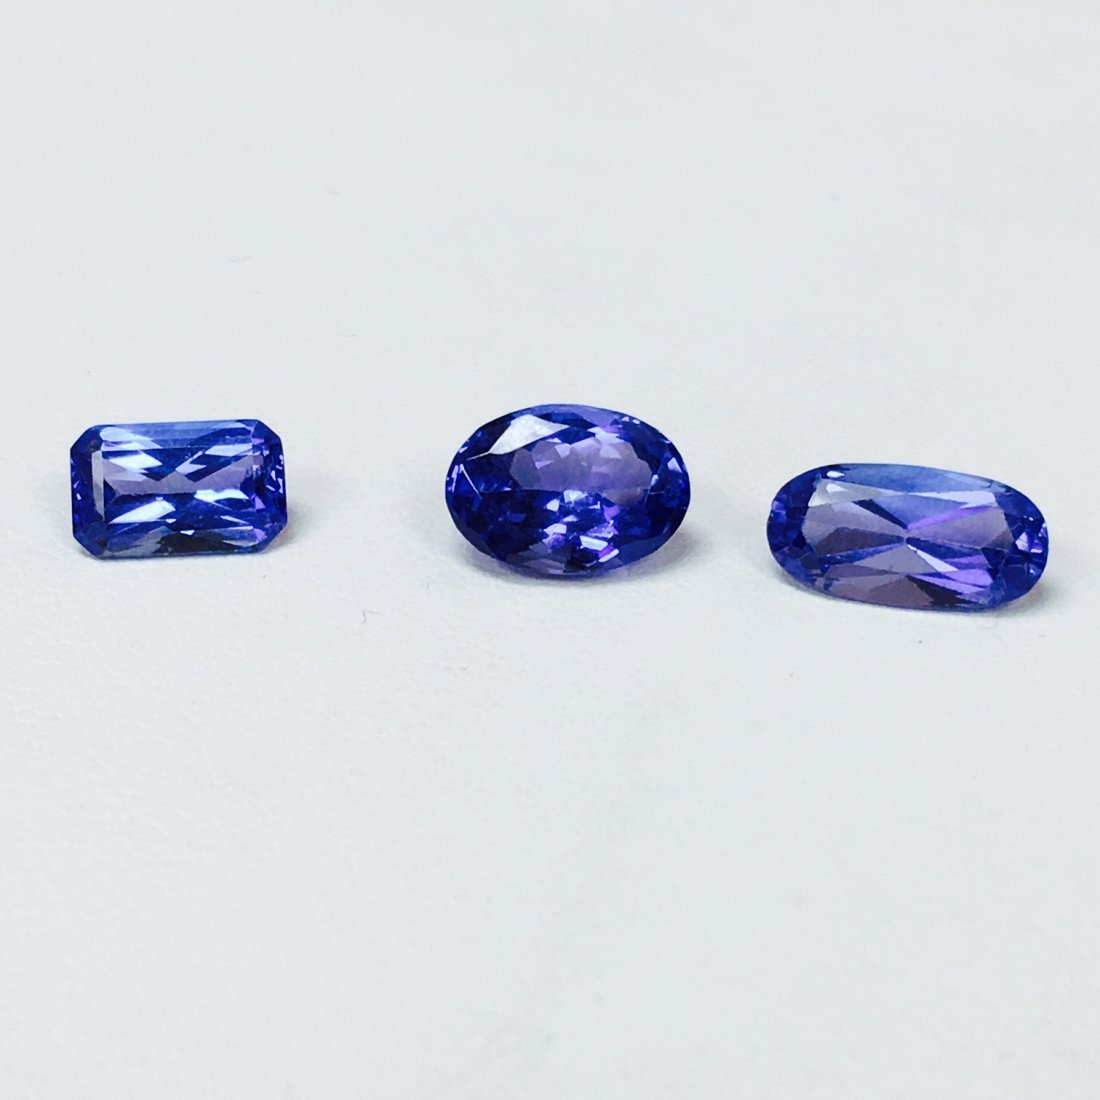 faceted gemstone loose weight mm natural ct index tanzanite size exclusive aaa il quality oval